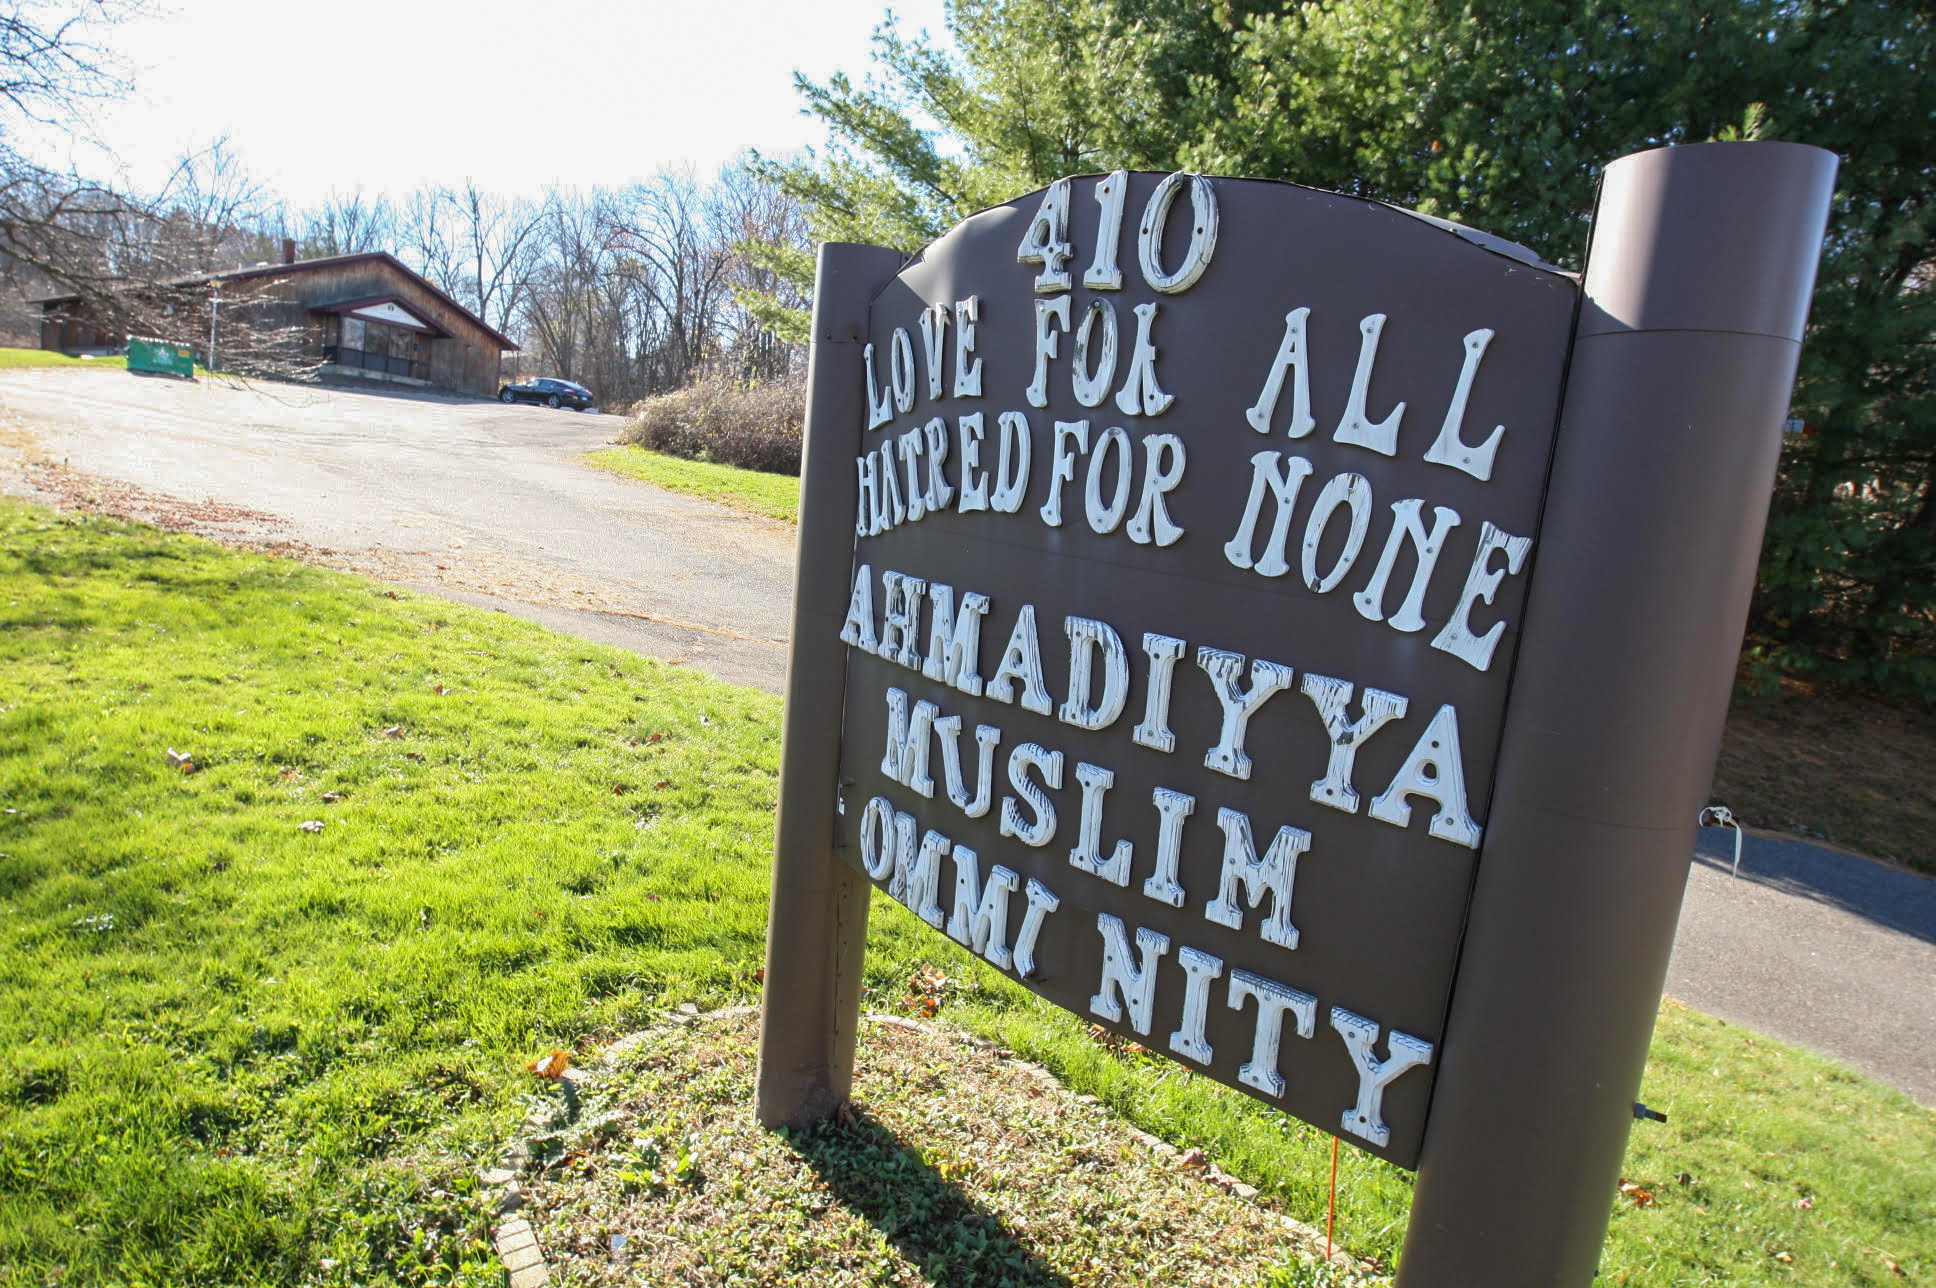 FILE PHOTO: The Baitul Aman mosque at 410 Main St. in South Meriden, Tuesday, Nov. 17, 2015. | Dave Zajac/Record-Journal